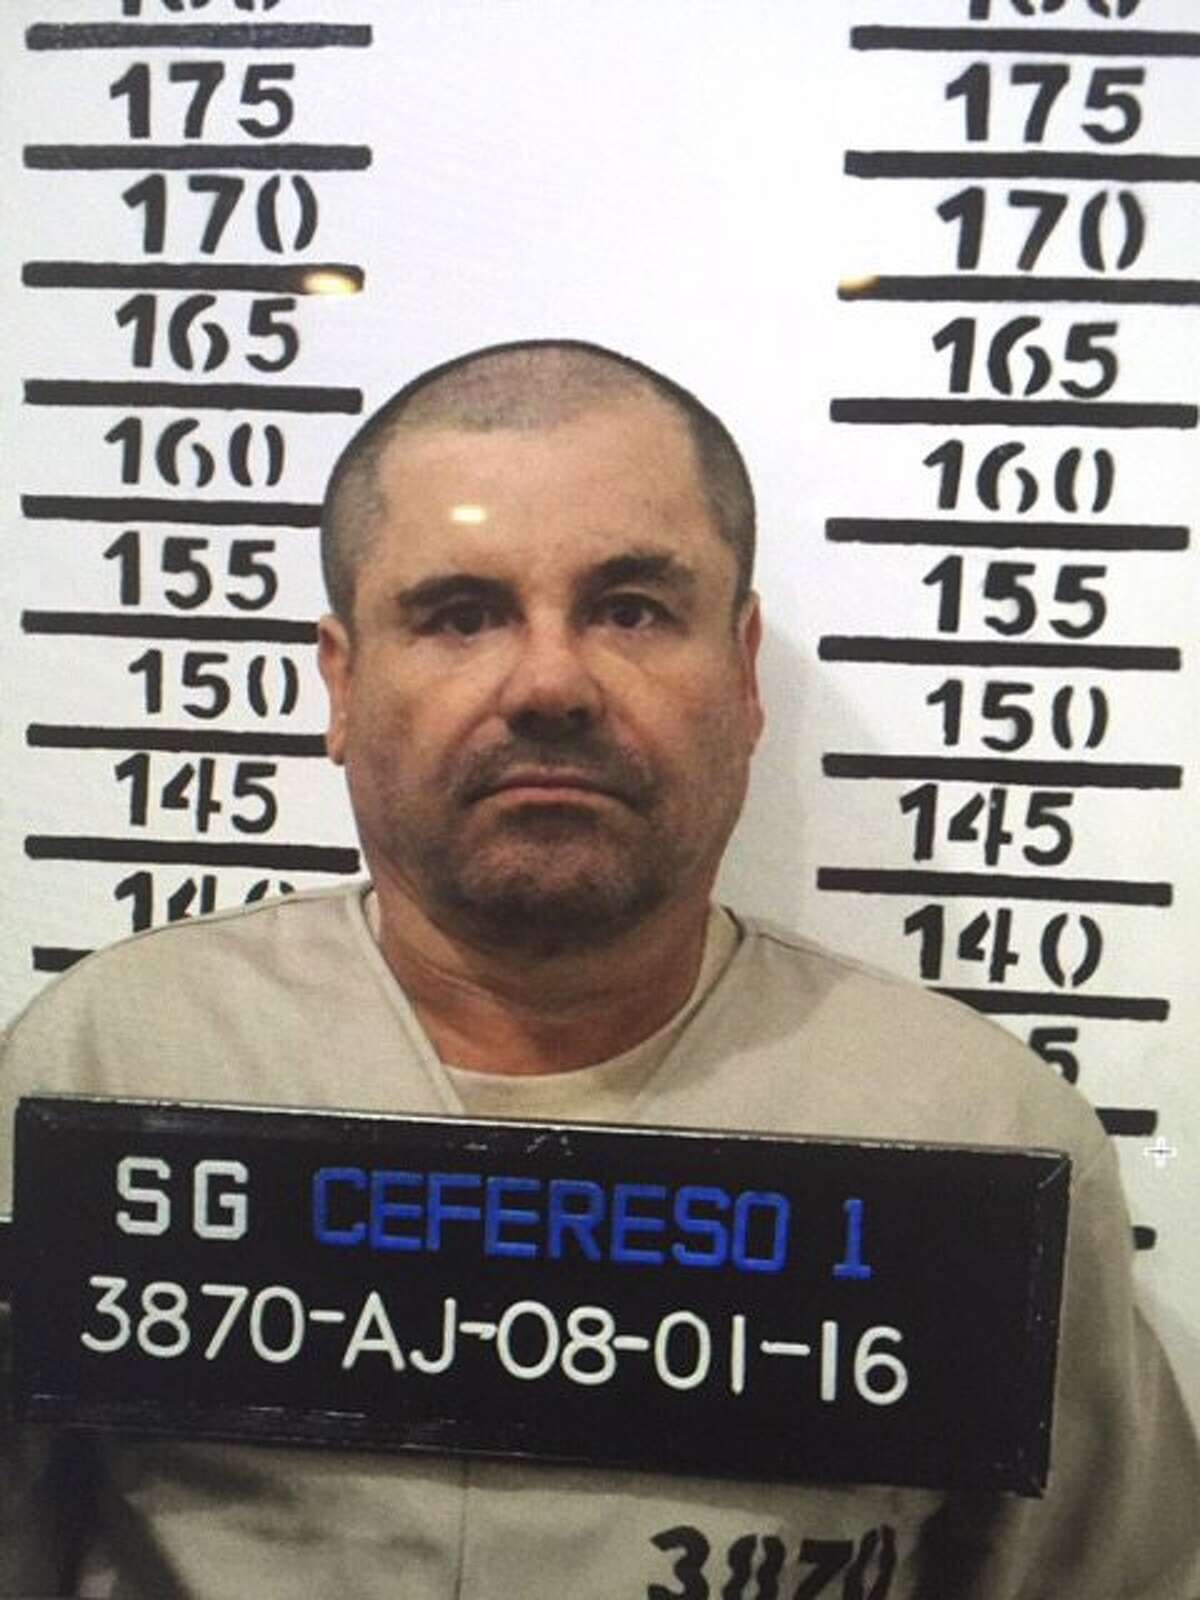 In this Jan. 8, 2016 image released by Mexico's federal government, Mexico's most wanted drug lord, Joaquin